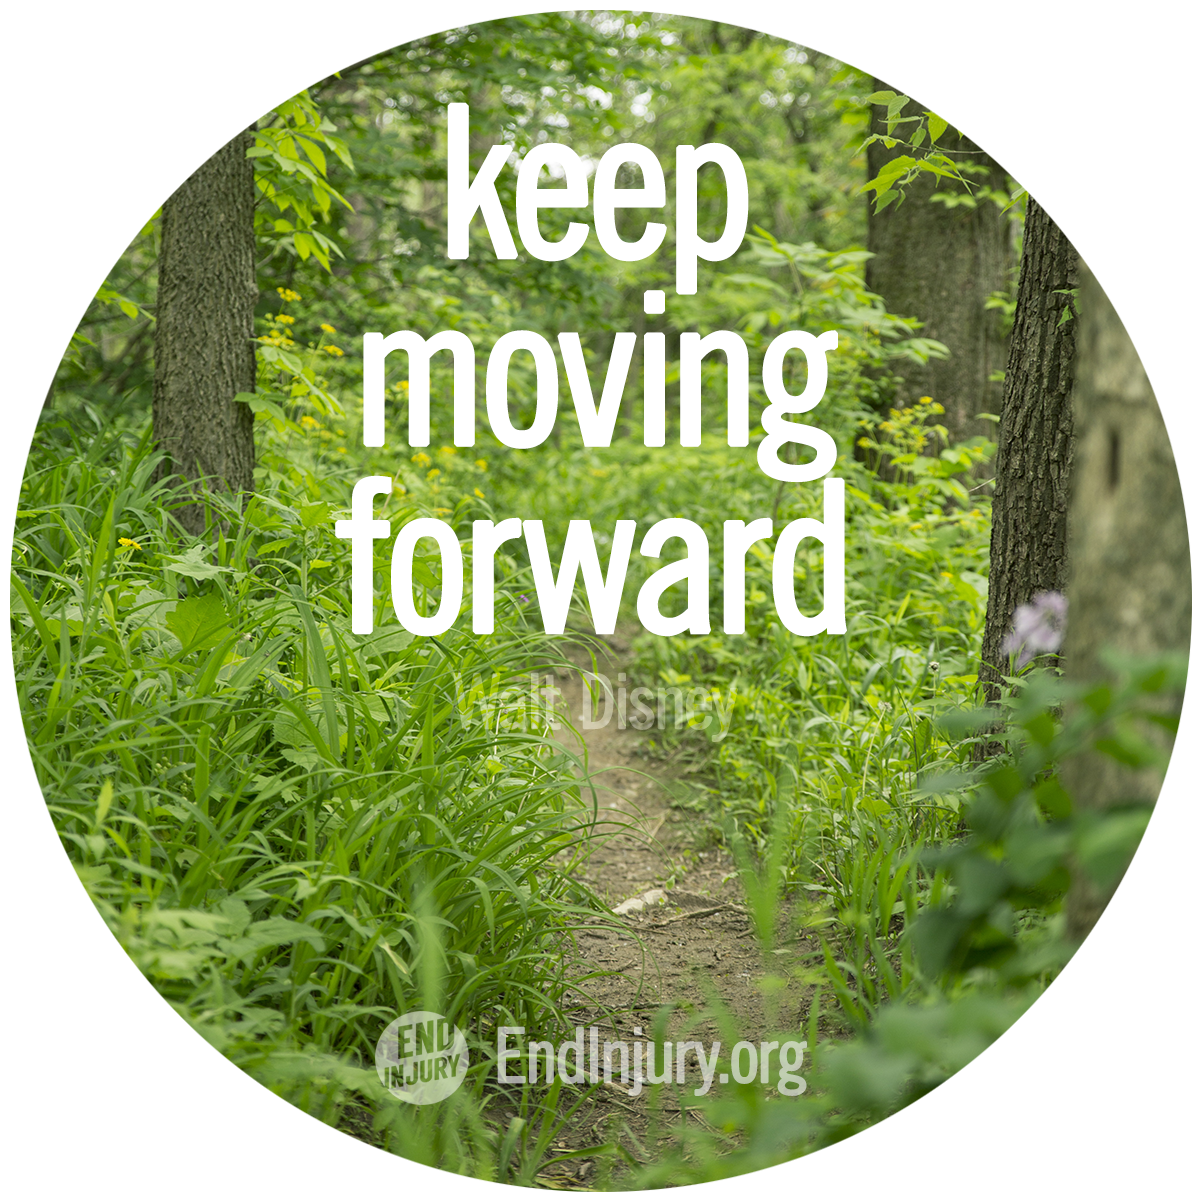 keep-moving-foward-disney-quote.png